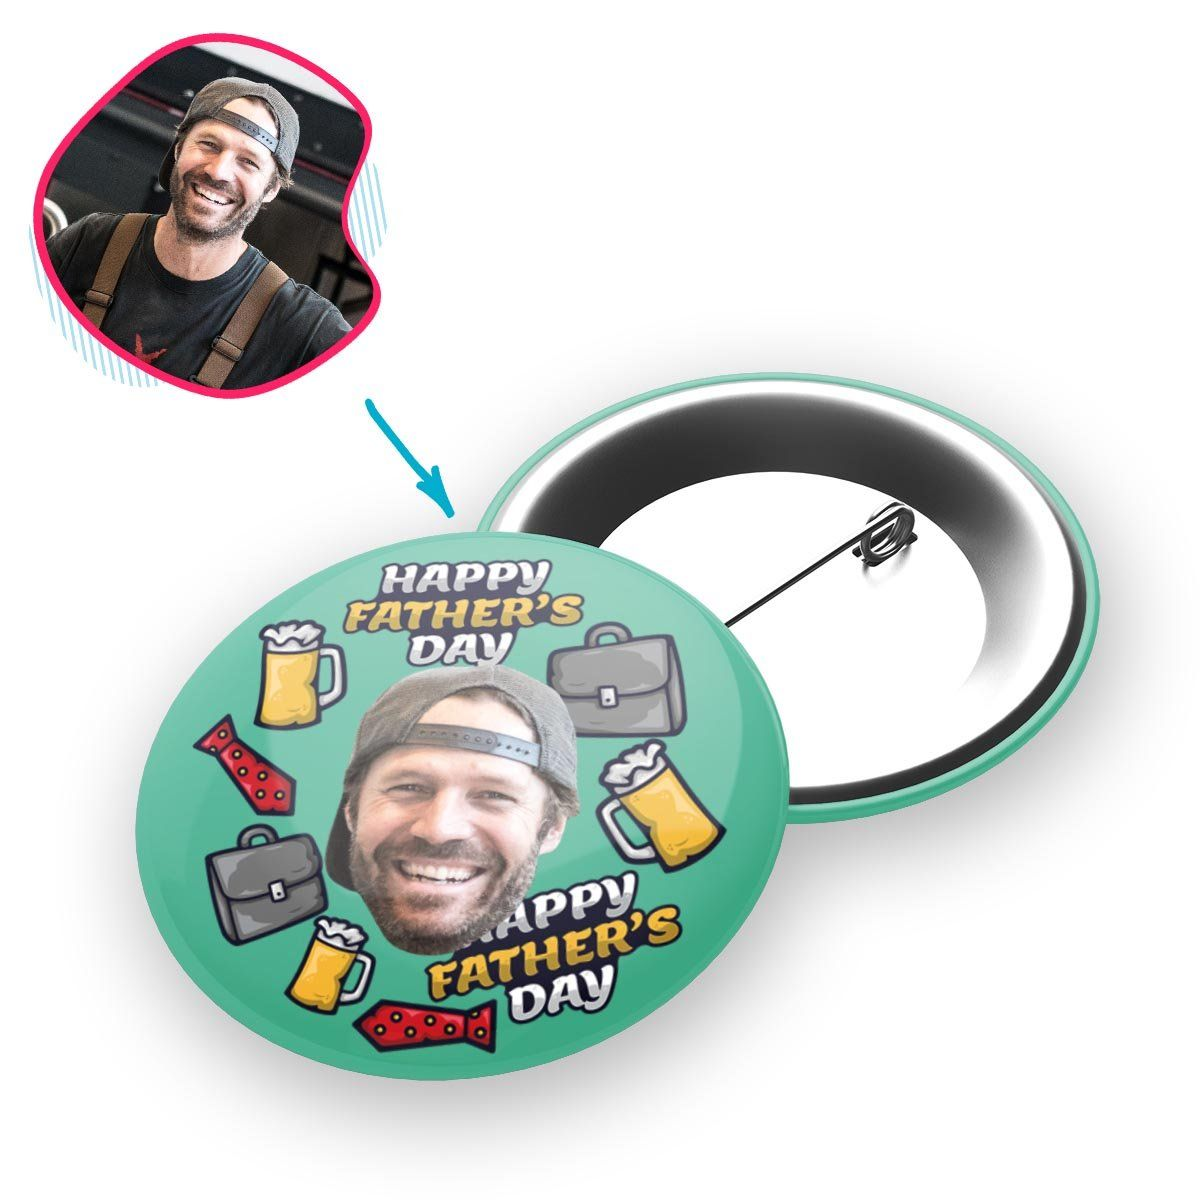 Mint Fathers Day personalized pin with photo of face printed on it